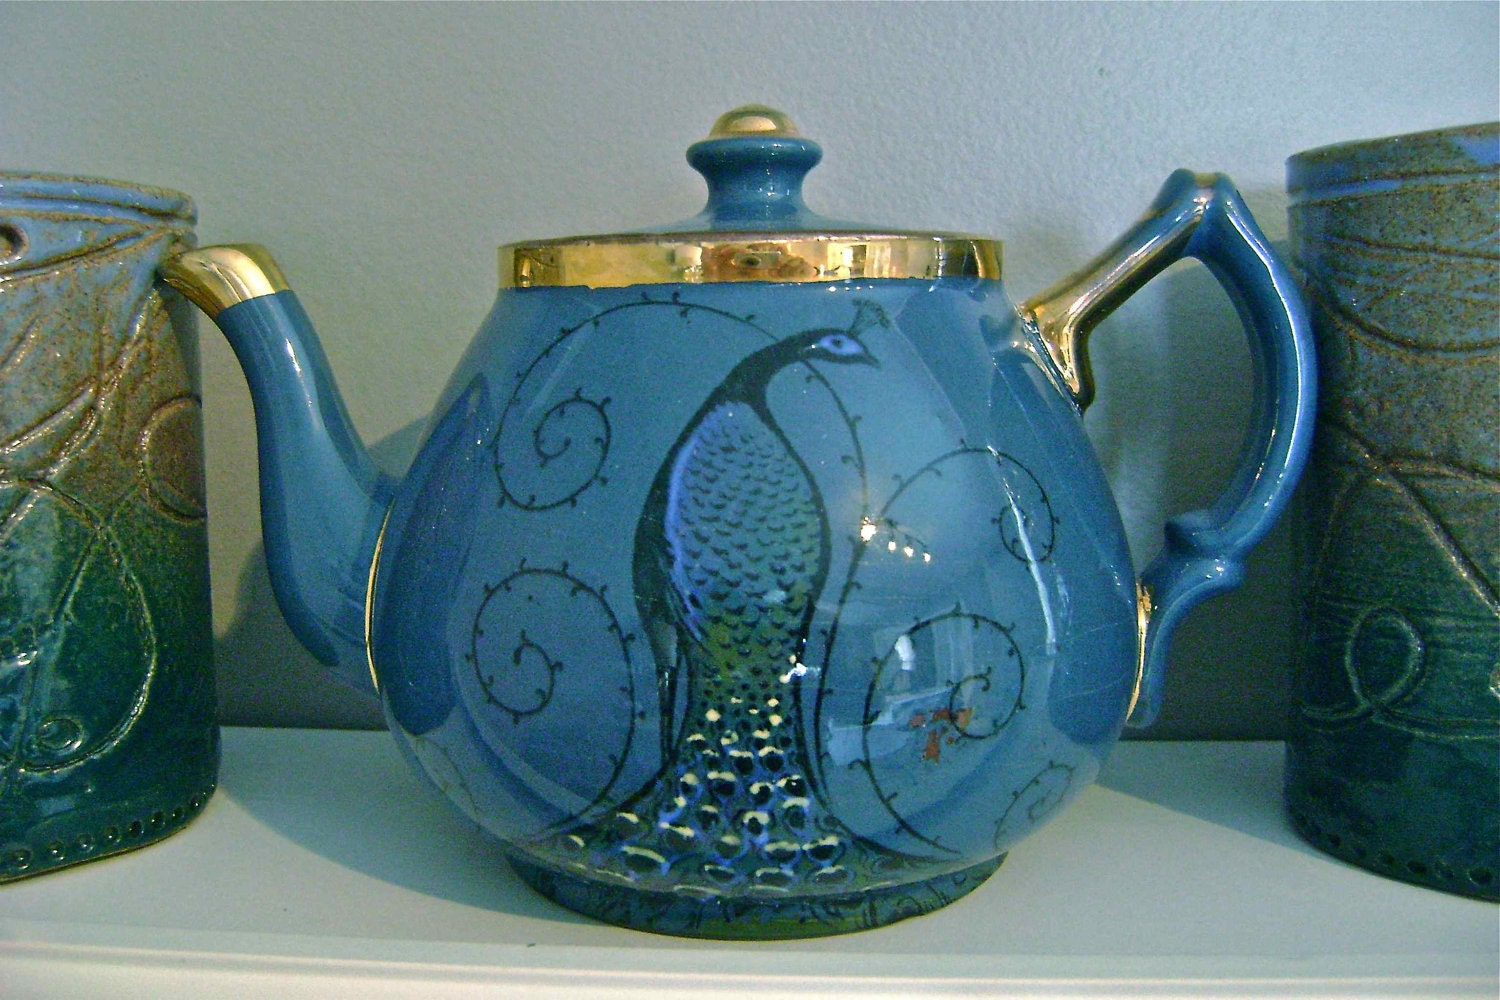 Peacock English Teapot By Vintagefrombutterfly On Etsy